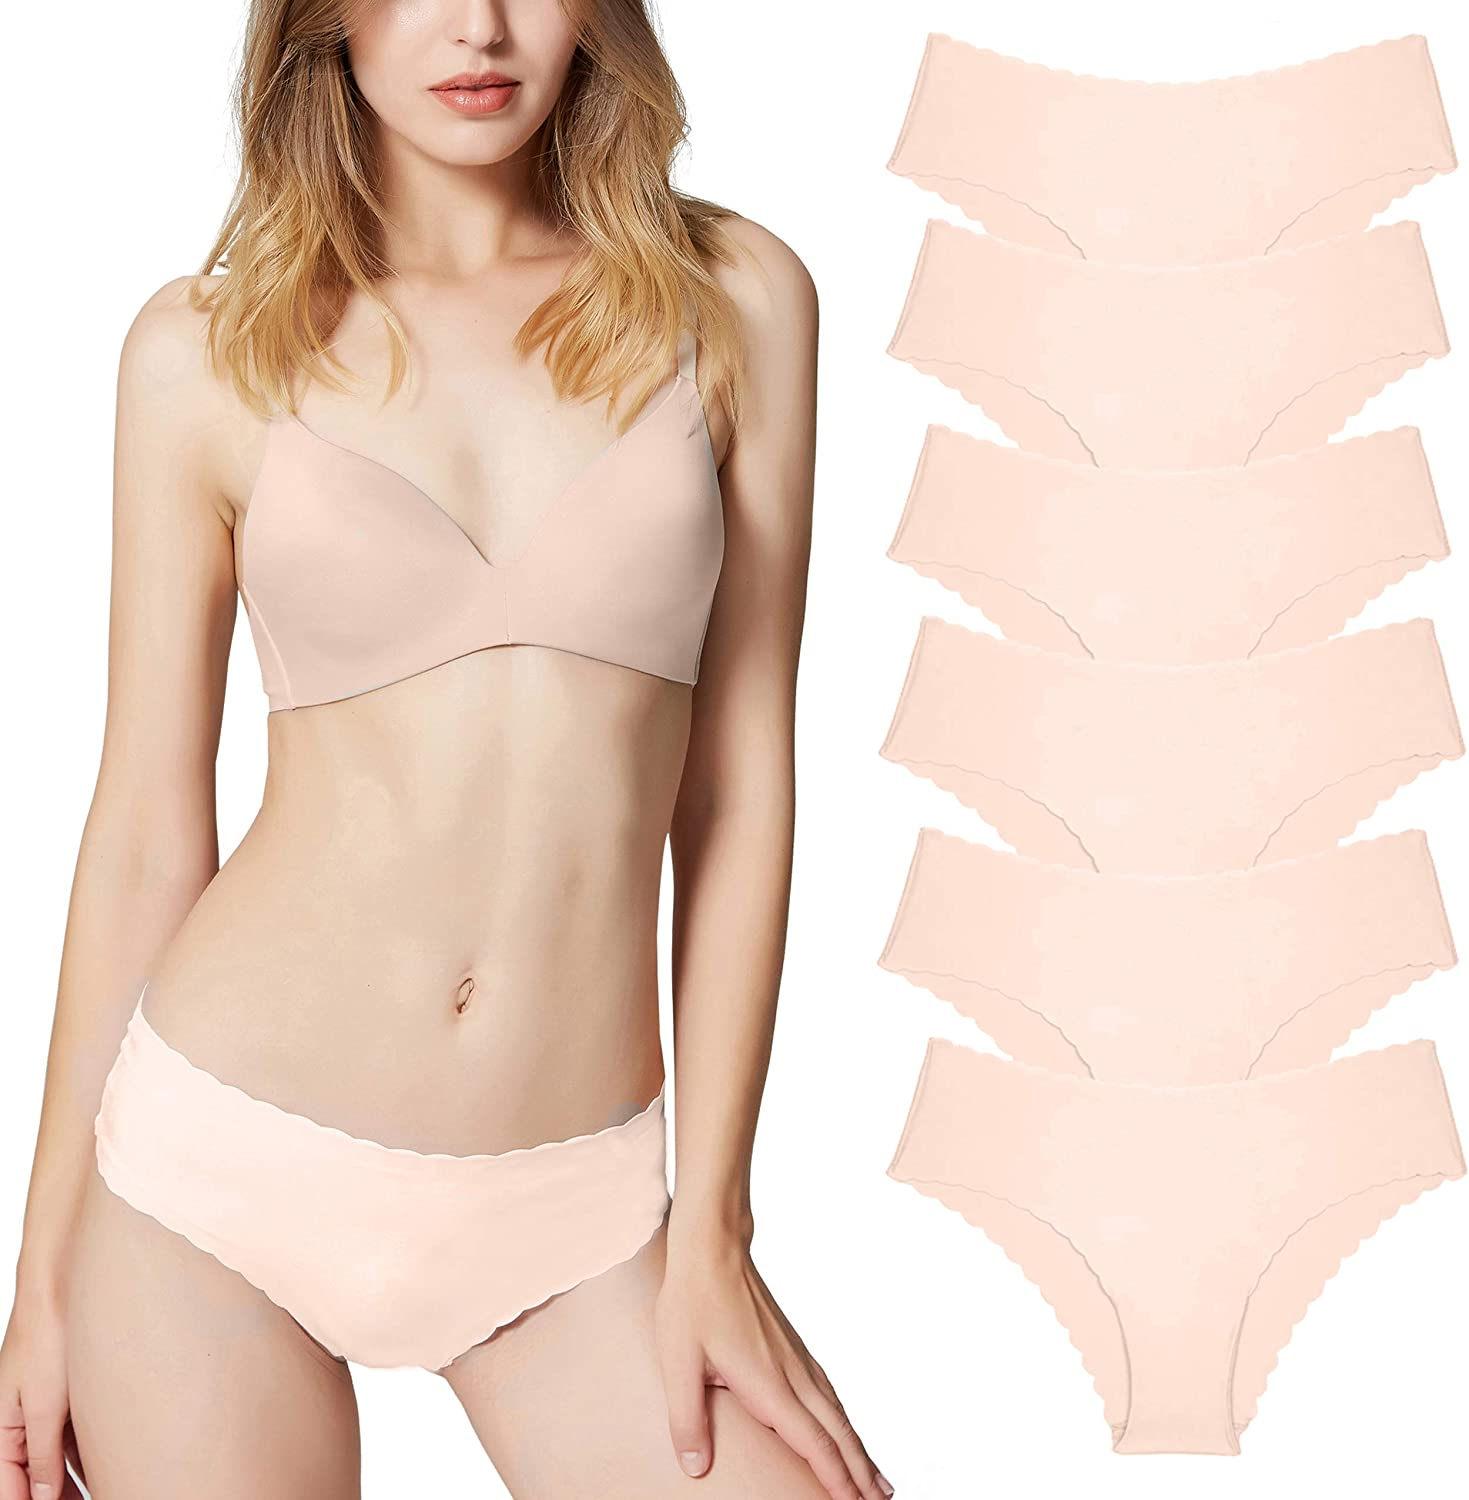 L /& XL Barely There Hipster Microfiber Bikinis 3 Pack SIZES M